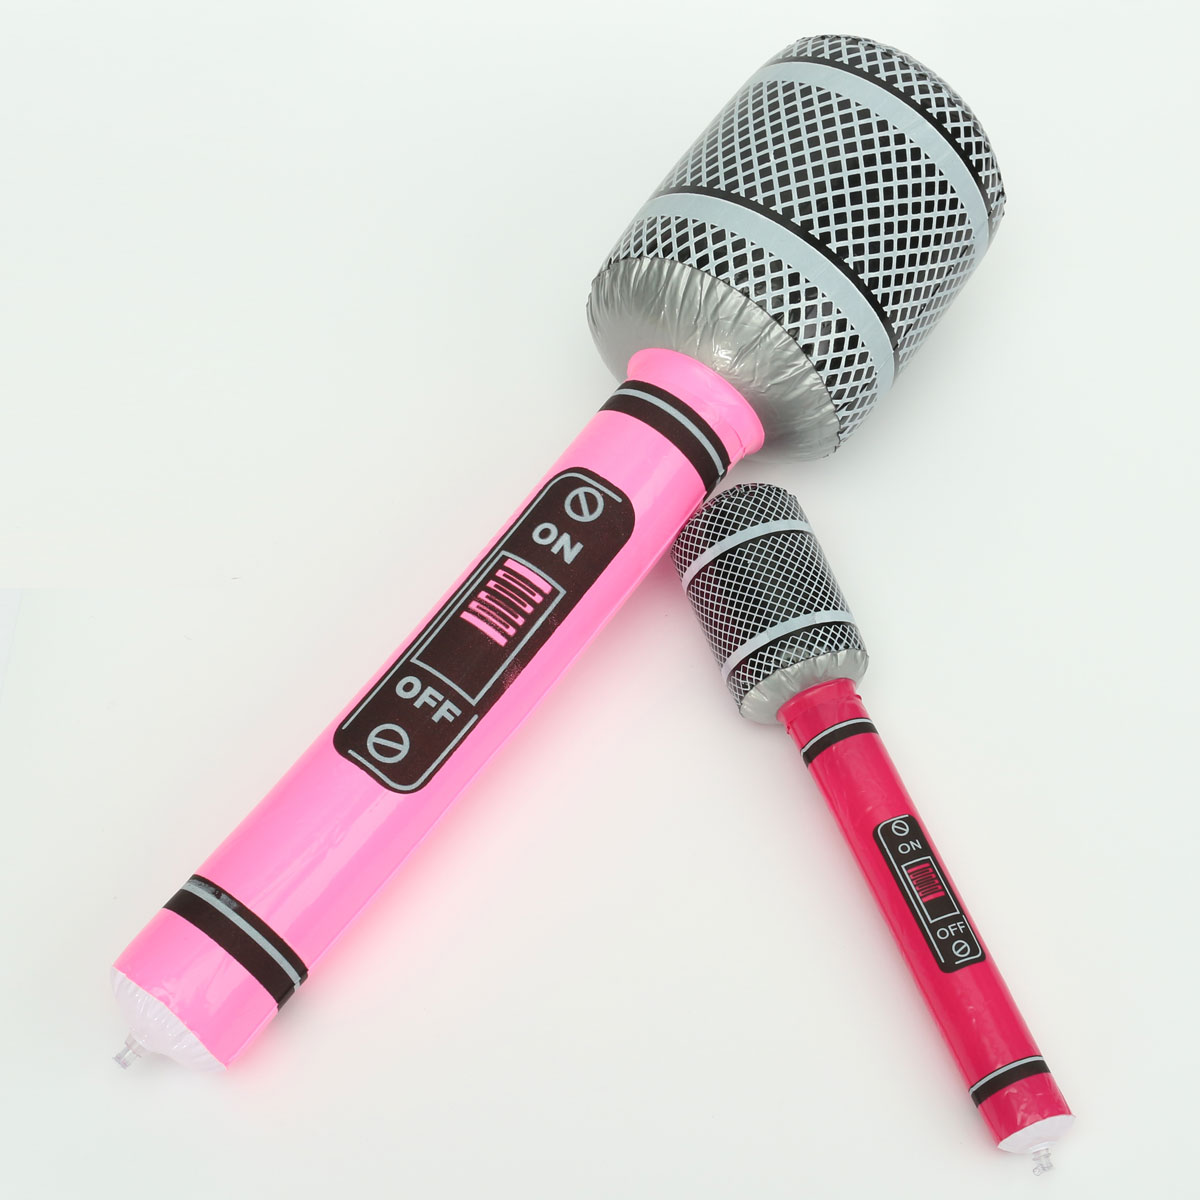 Hot Party Gift Toys 2 Size Fancy Karaoke Inflatable Microphone Children Kids Favor Toy Sing Song Activity Birthday Prop(China (Mainland))